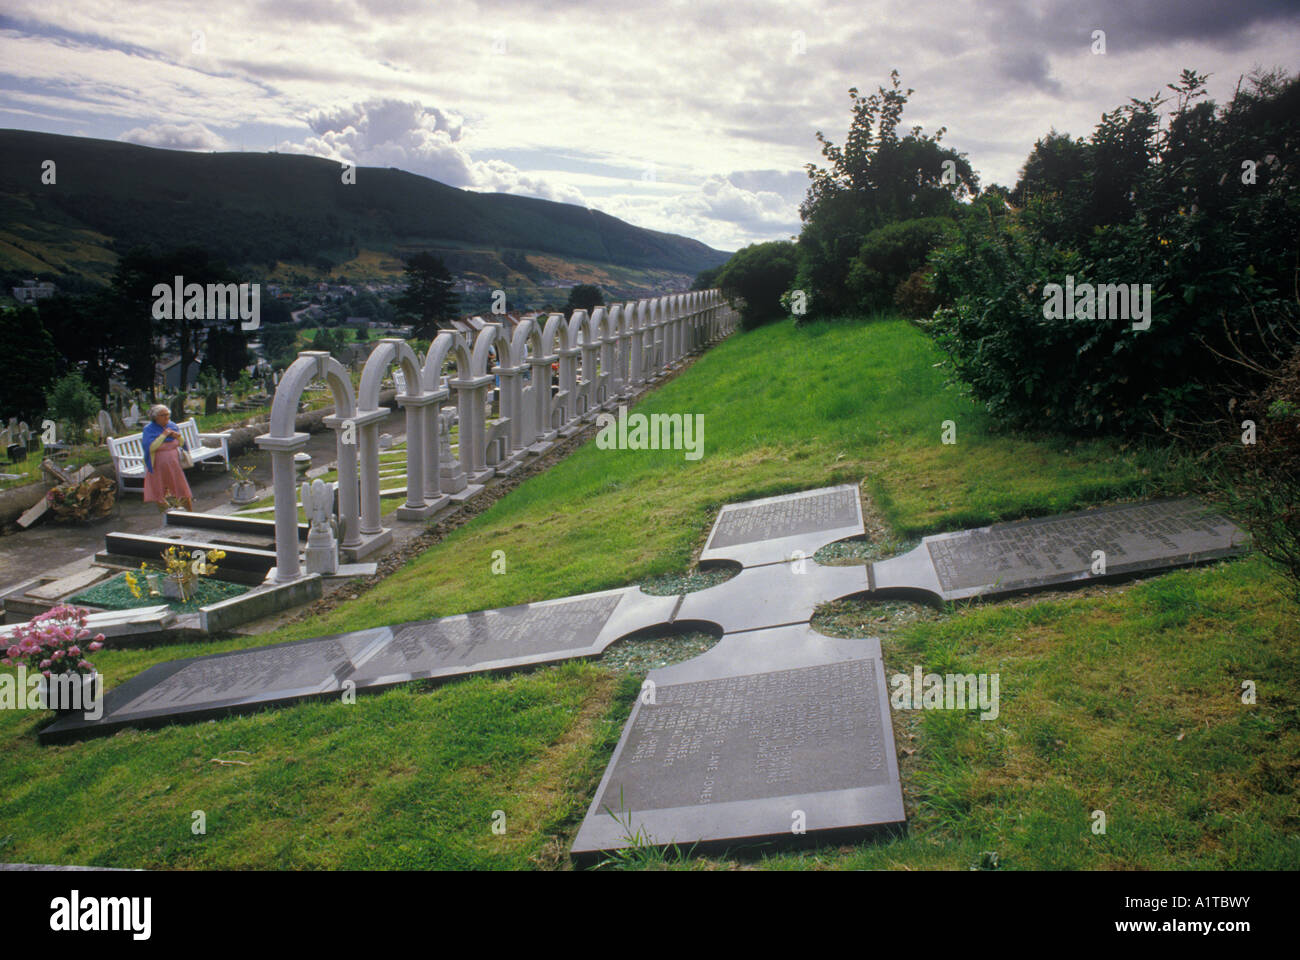 Aberfan Mid Glamorgan Wales UK memorial to the children killed in the coal mining tip disaster in 1966. - Stock Image